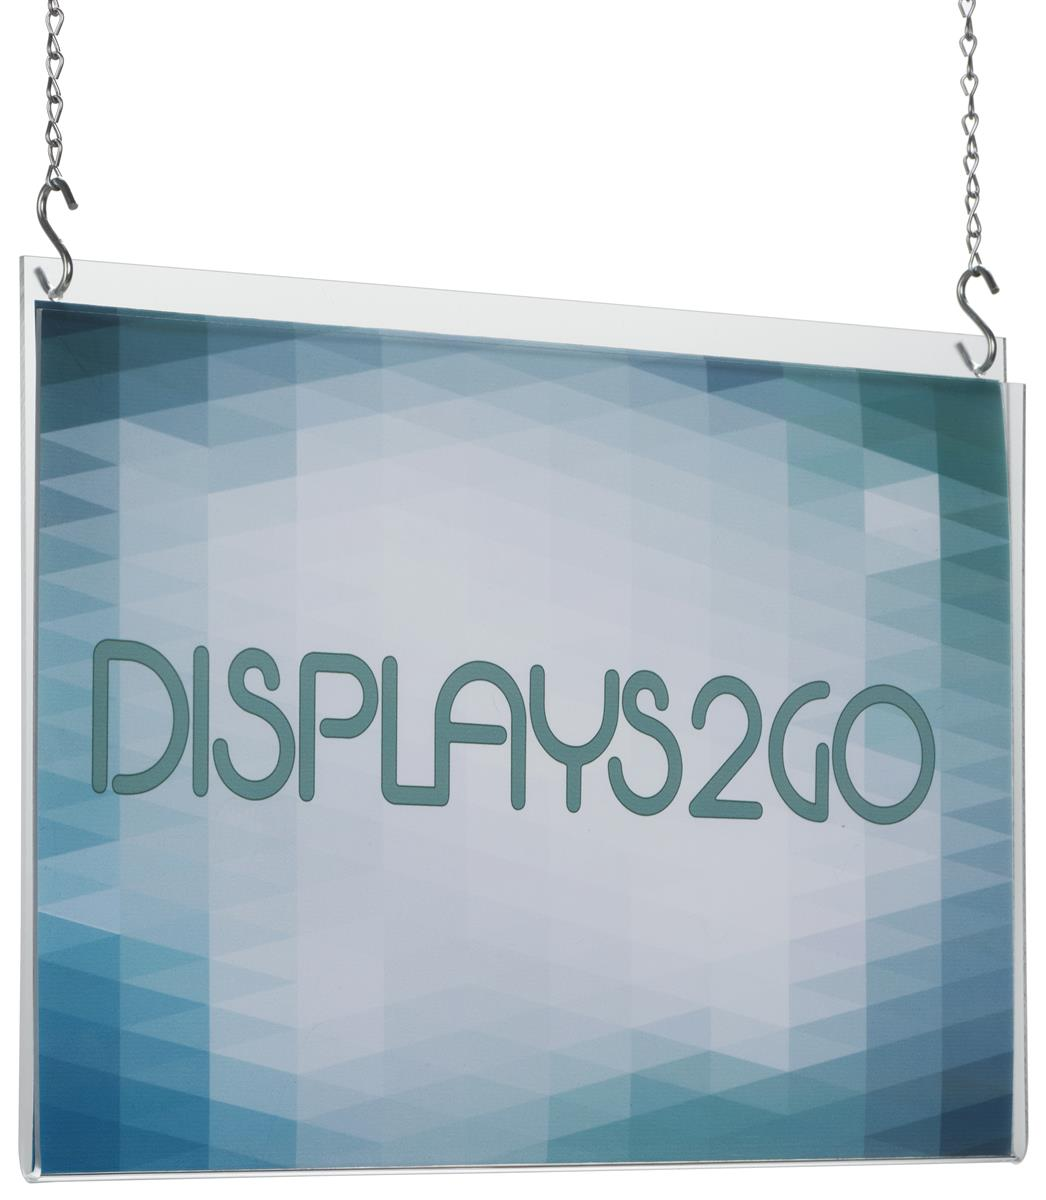 Acrylic Poster Hangers 17 X 11 Frame W Hanging Hardware